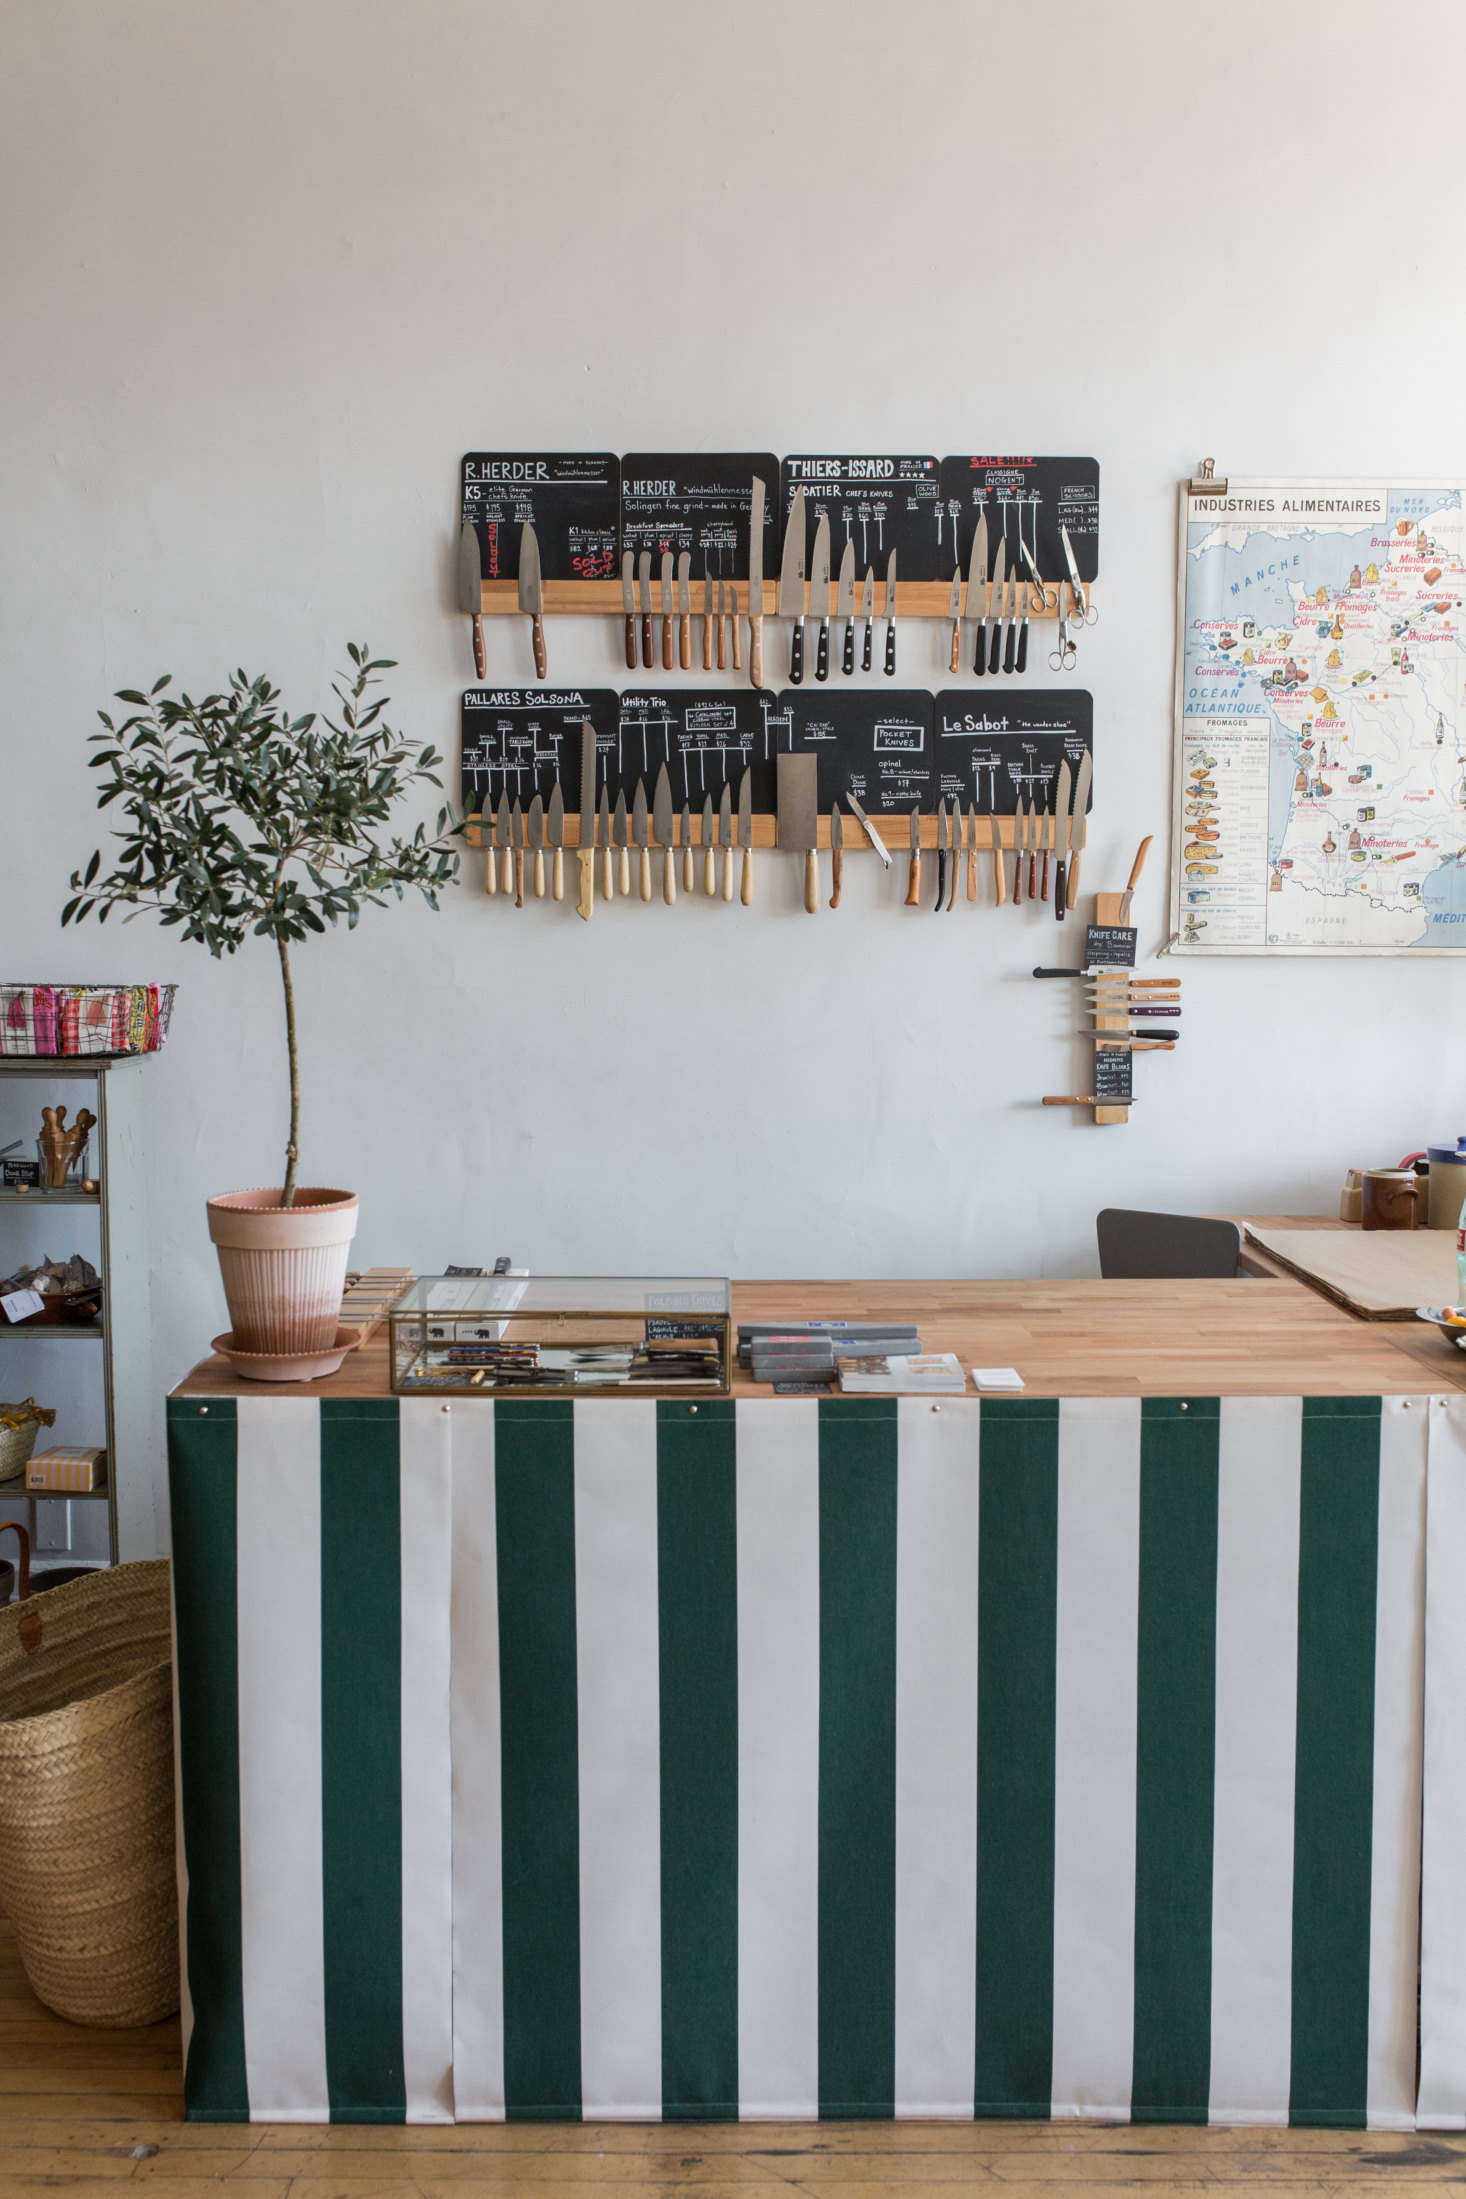 Behind the counter: A display of knives from all over Europe.